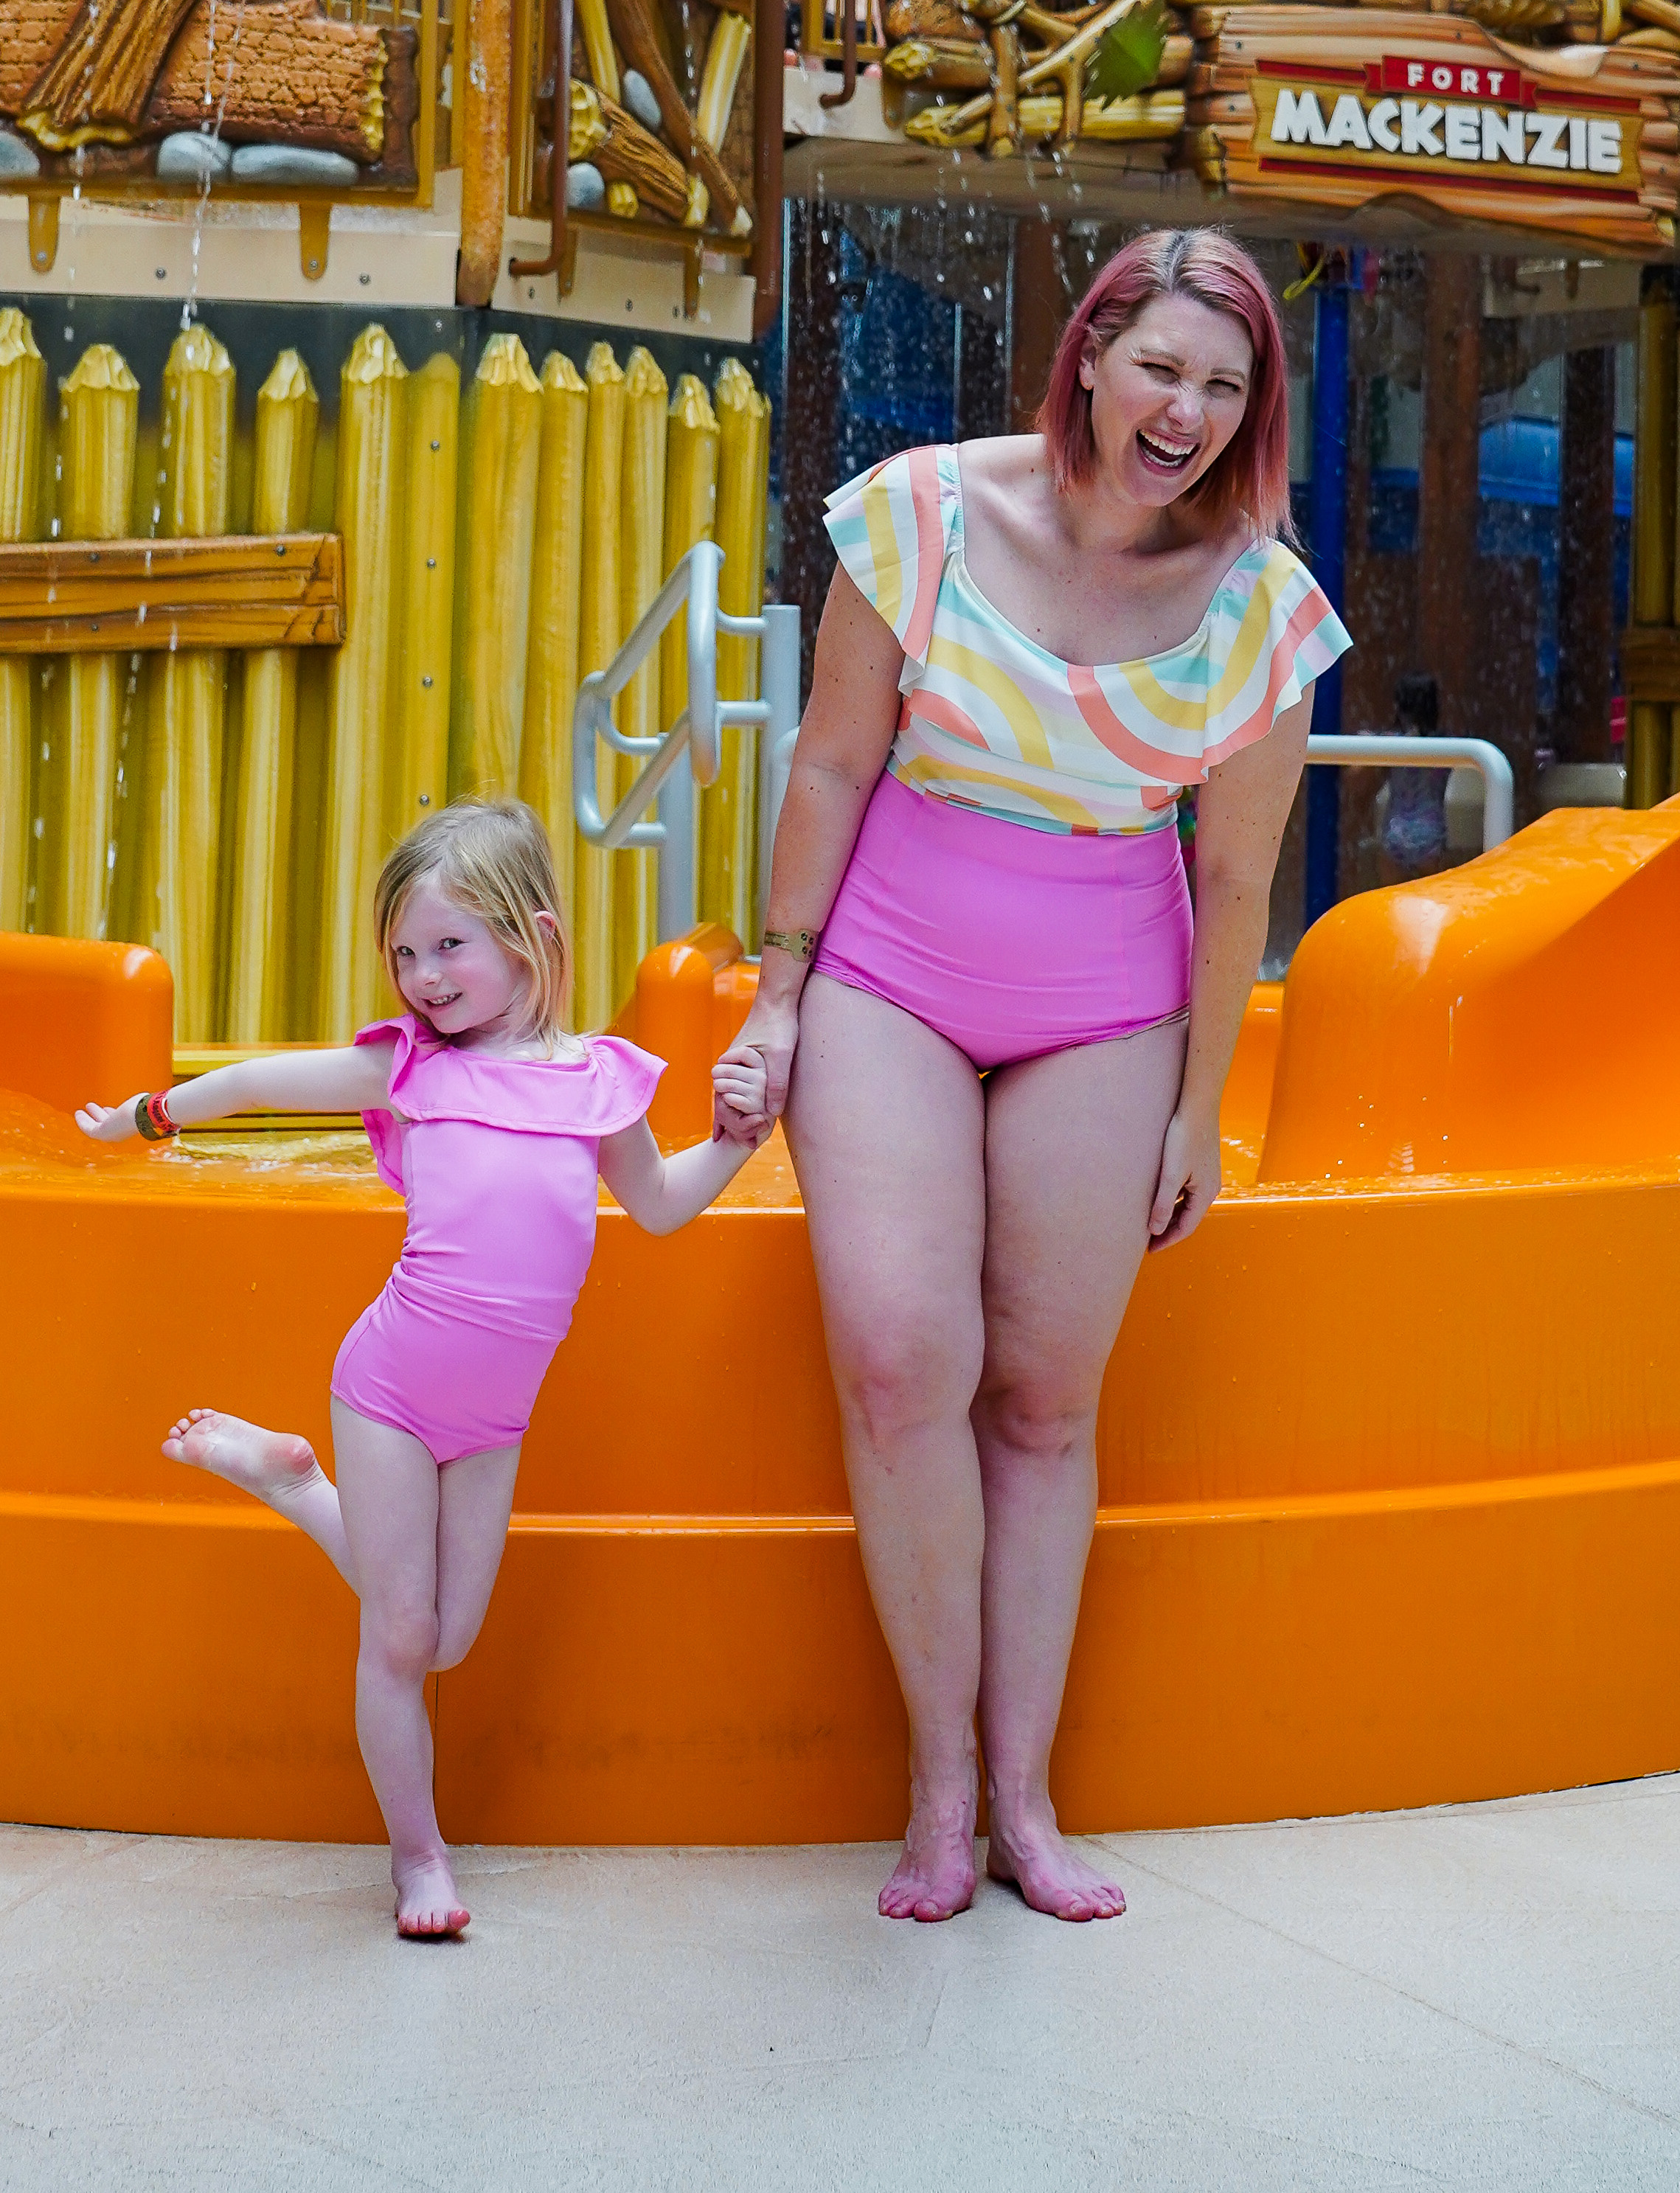 On the hunt for flattering swimsuits for moms? These are some of the best options out there!